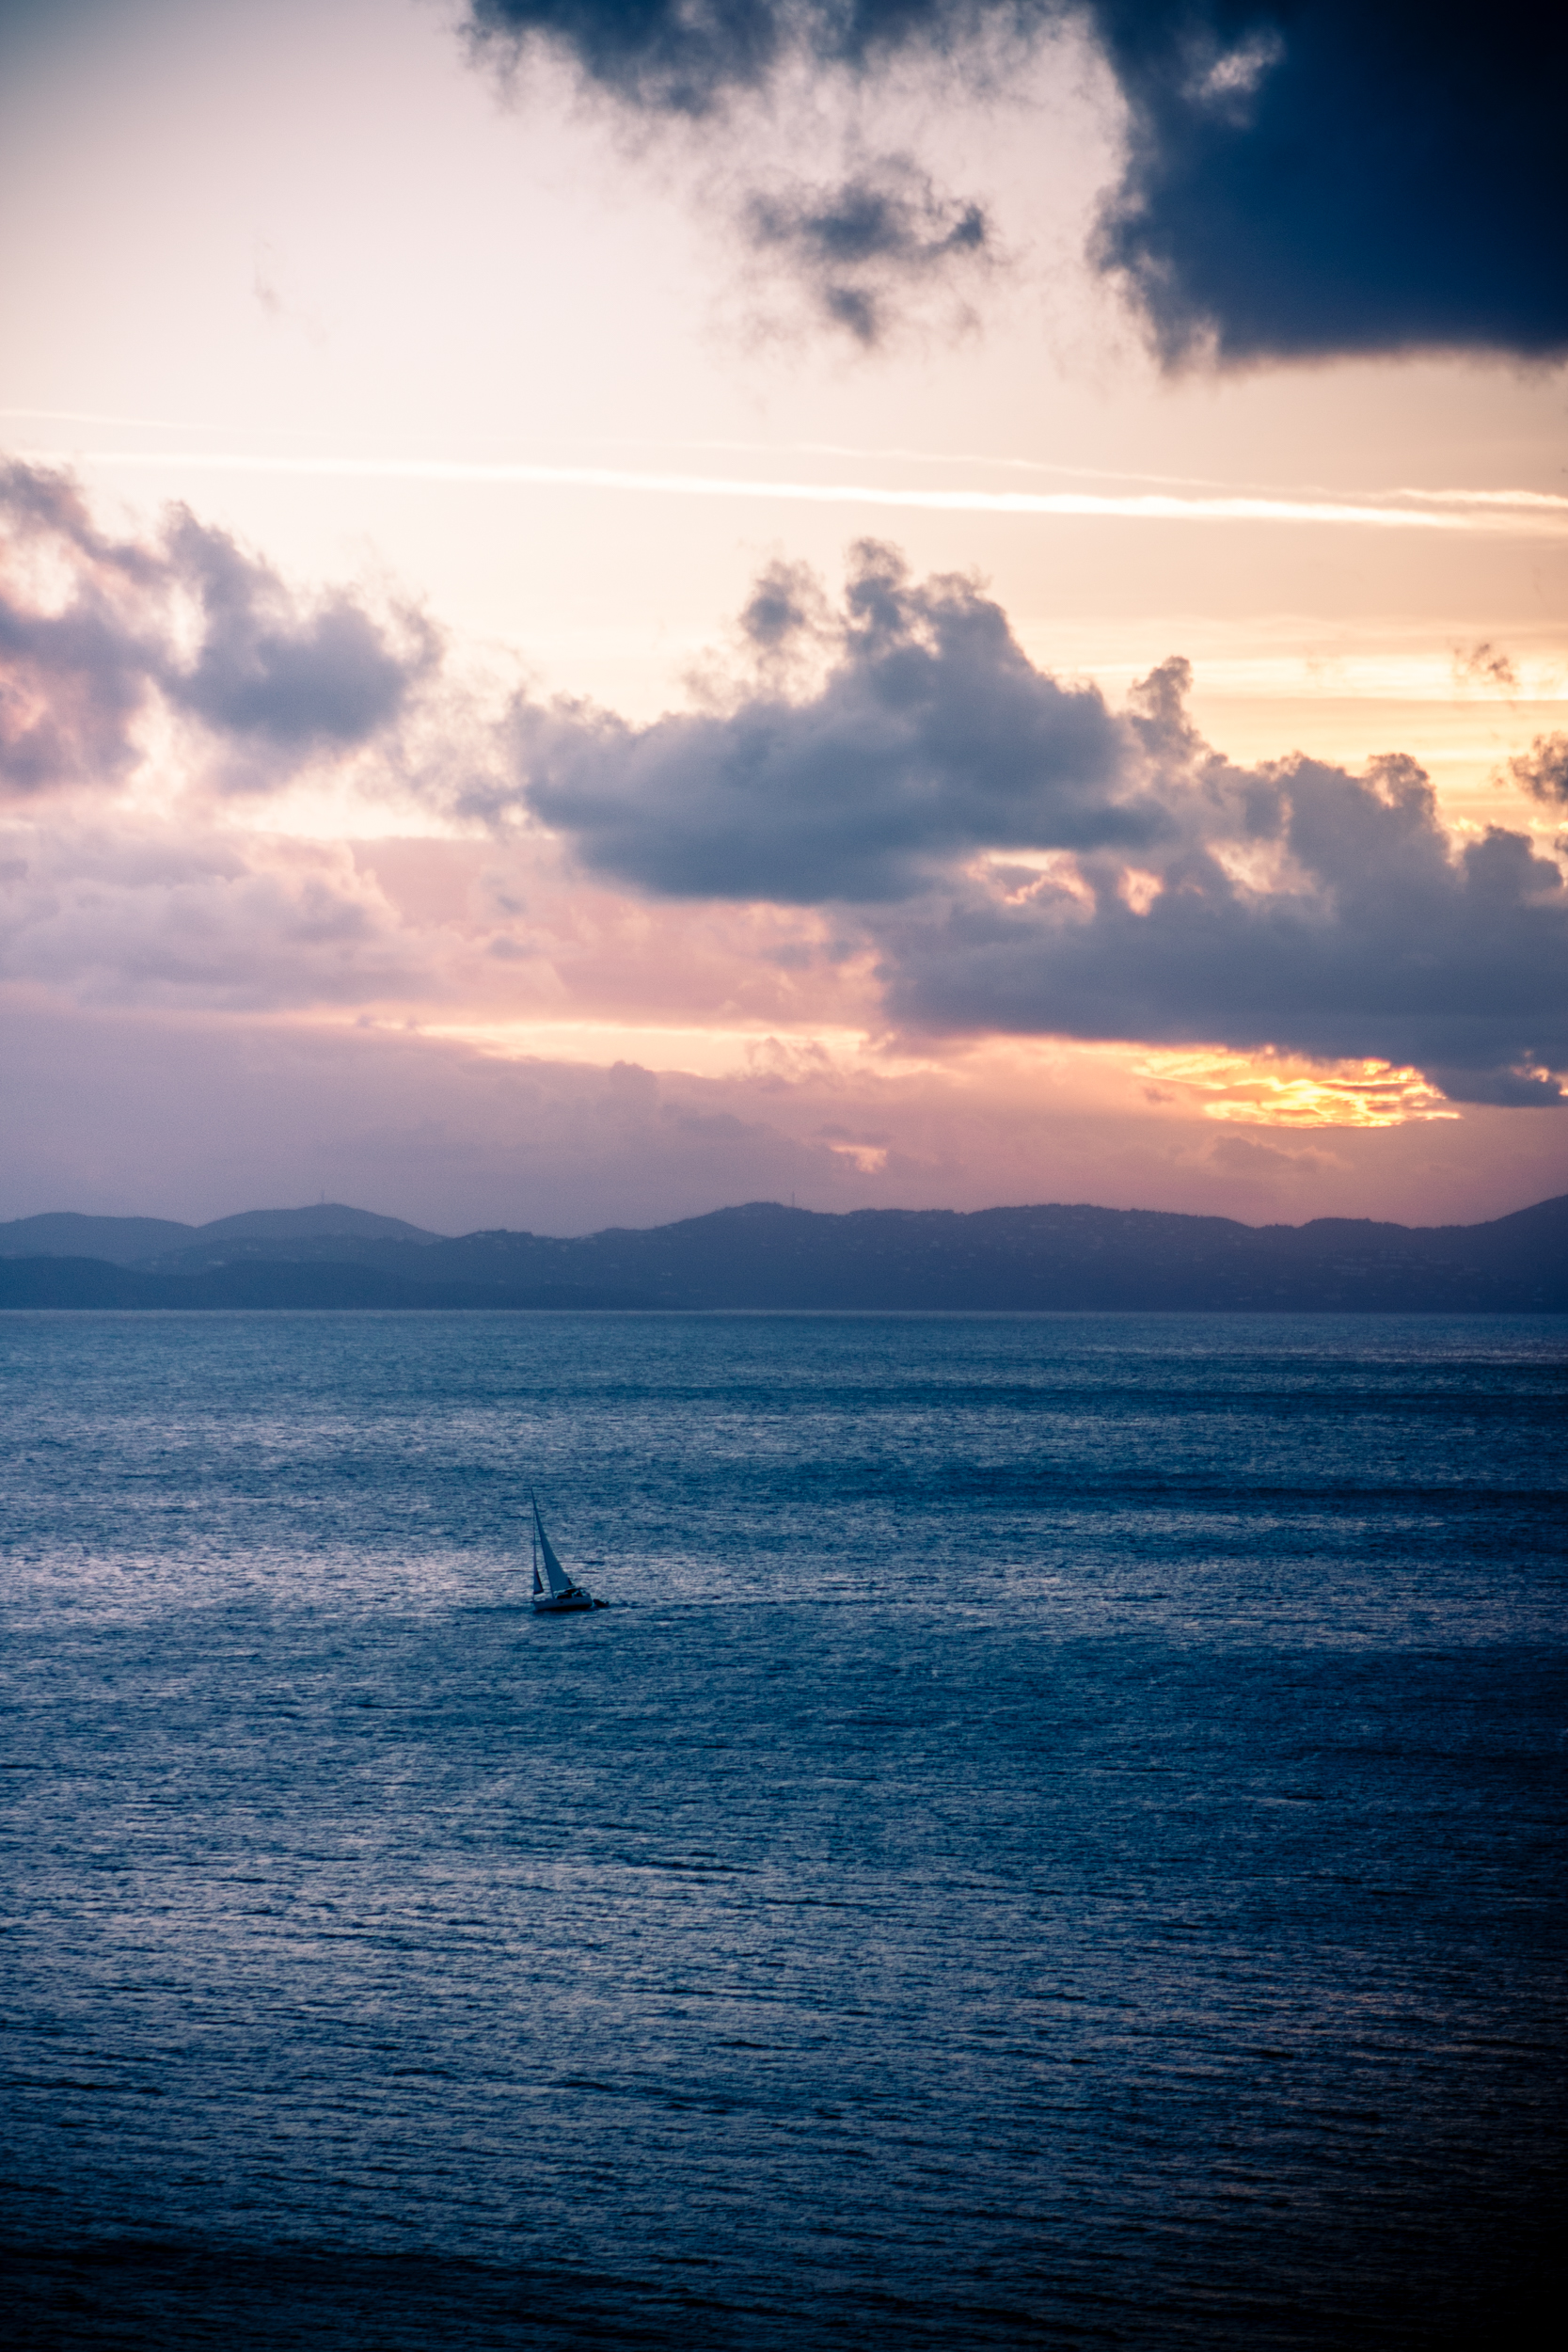 A sailboat crosses the ocean with a beautiful sunset and Caribbean islands in the background.